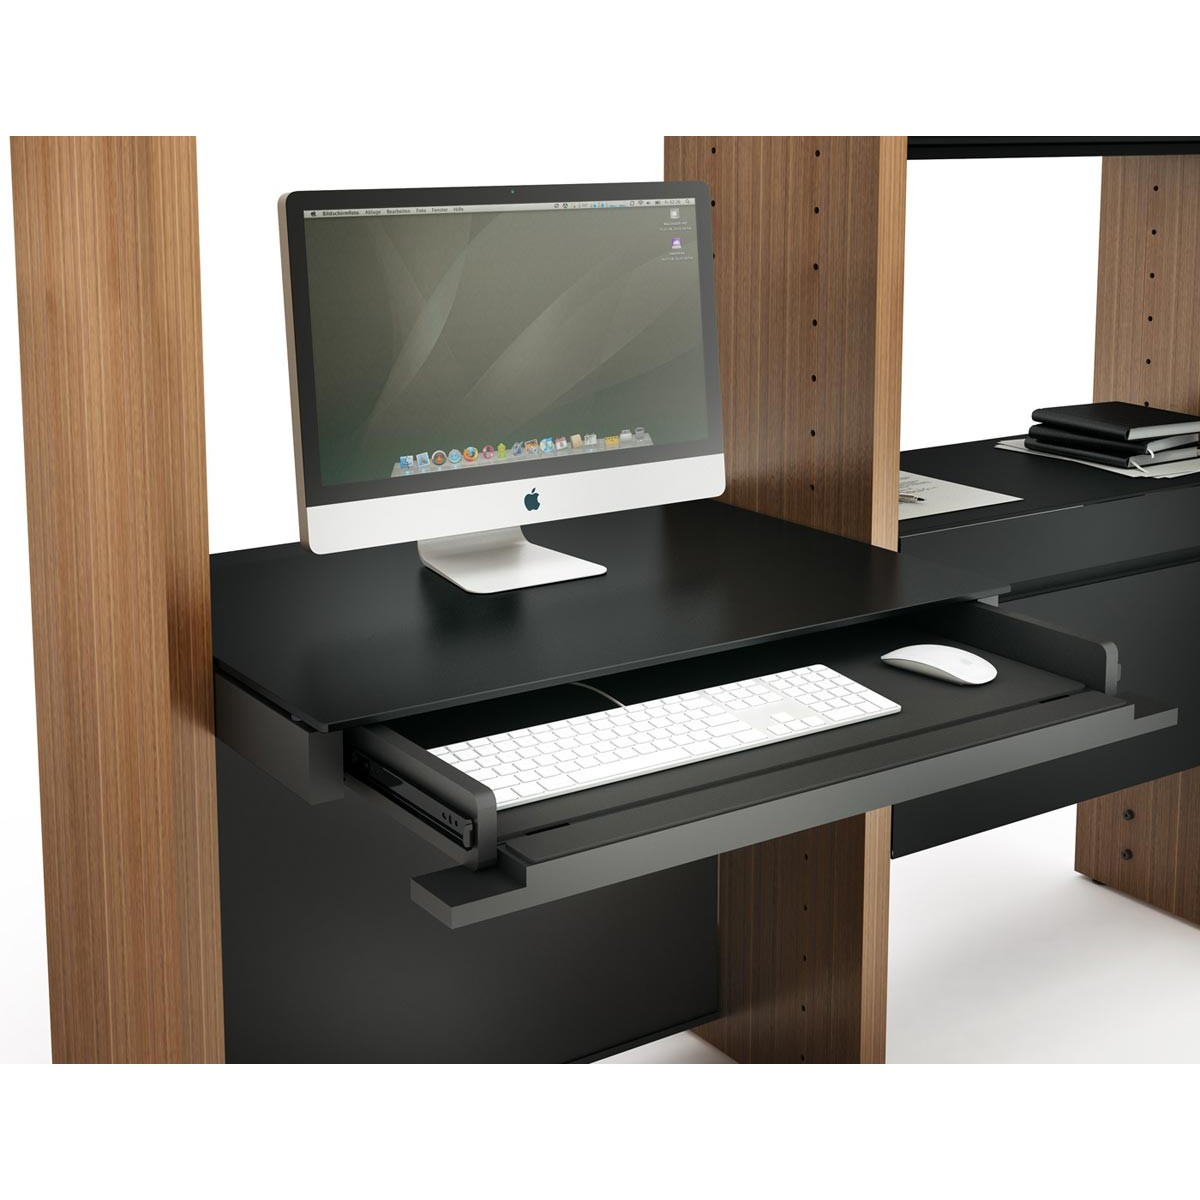 semblance office modular system desk. $3,362.00 USD Semblance Office Modular System Desk